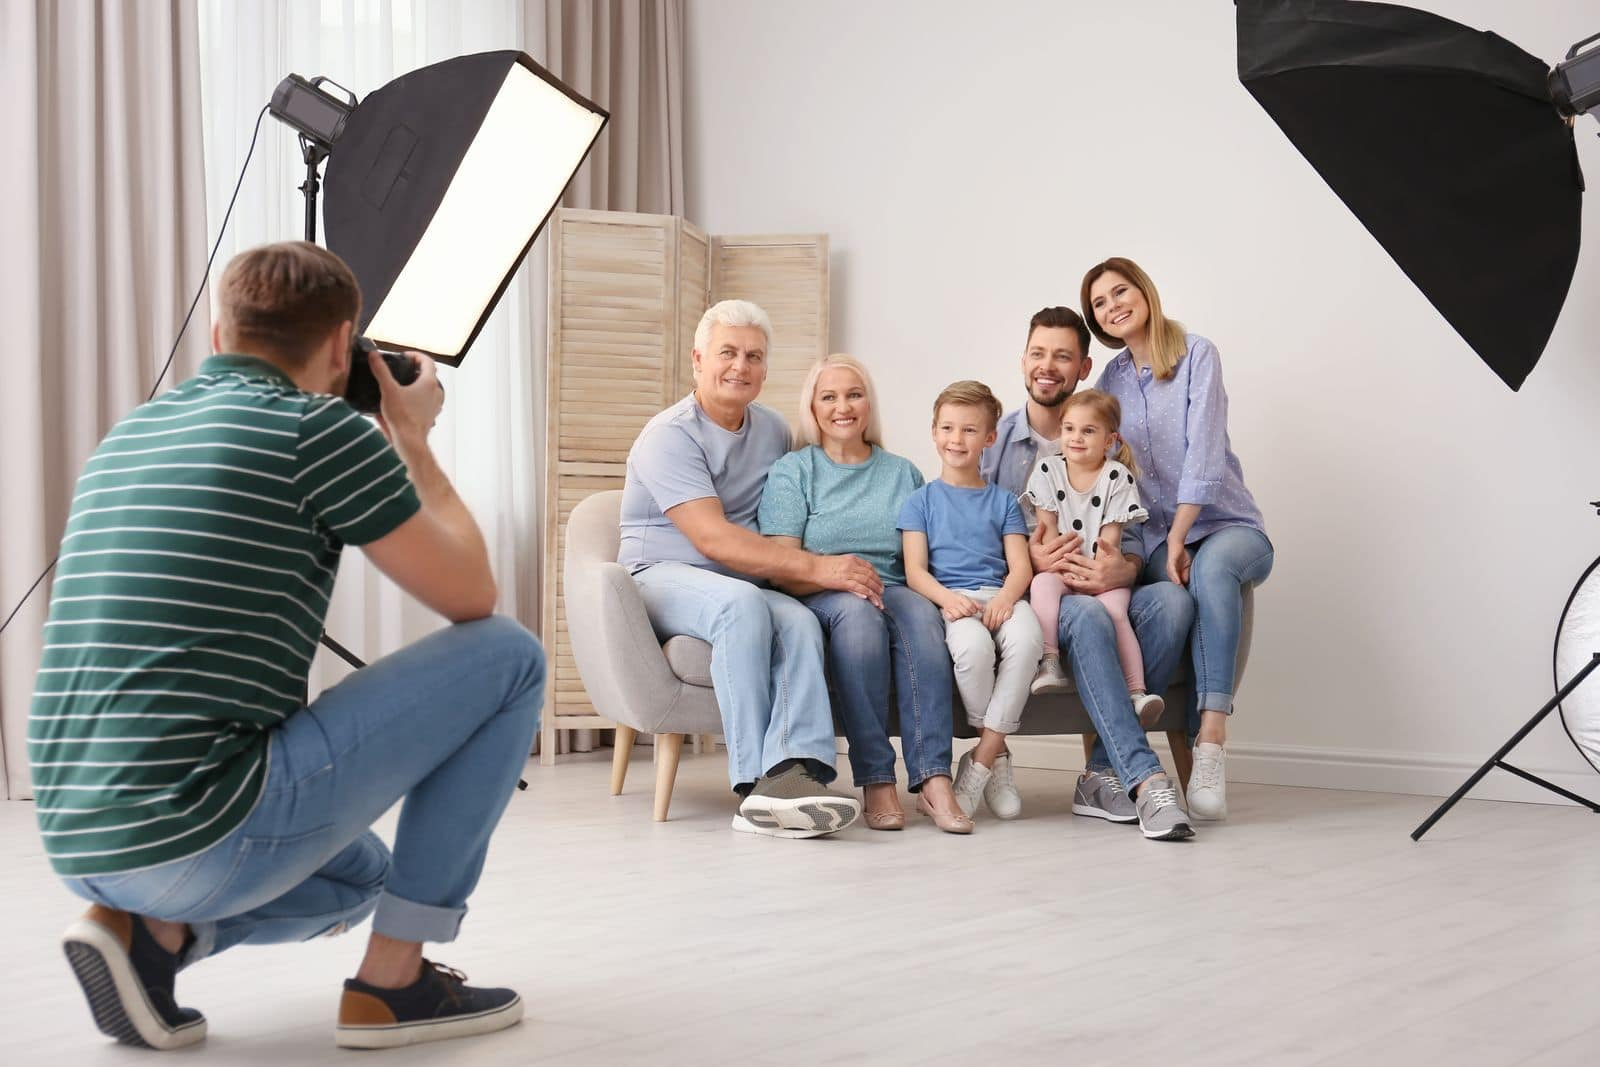 Photographing family in a studio conditions